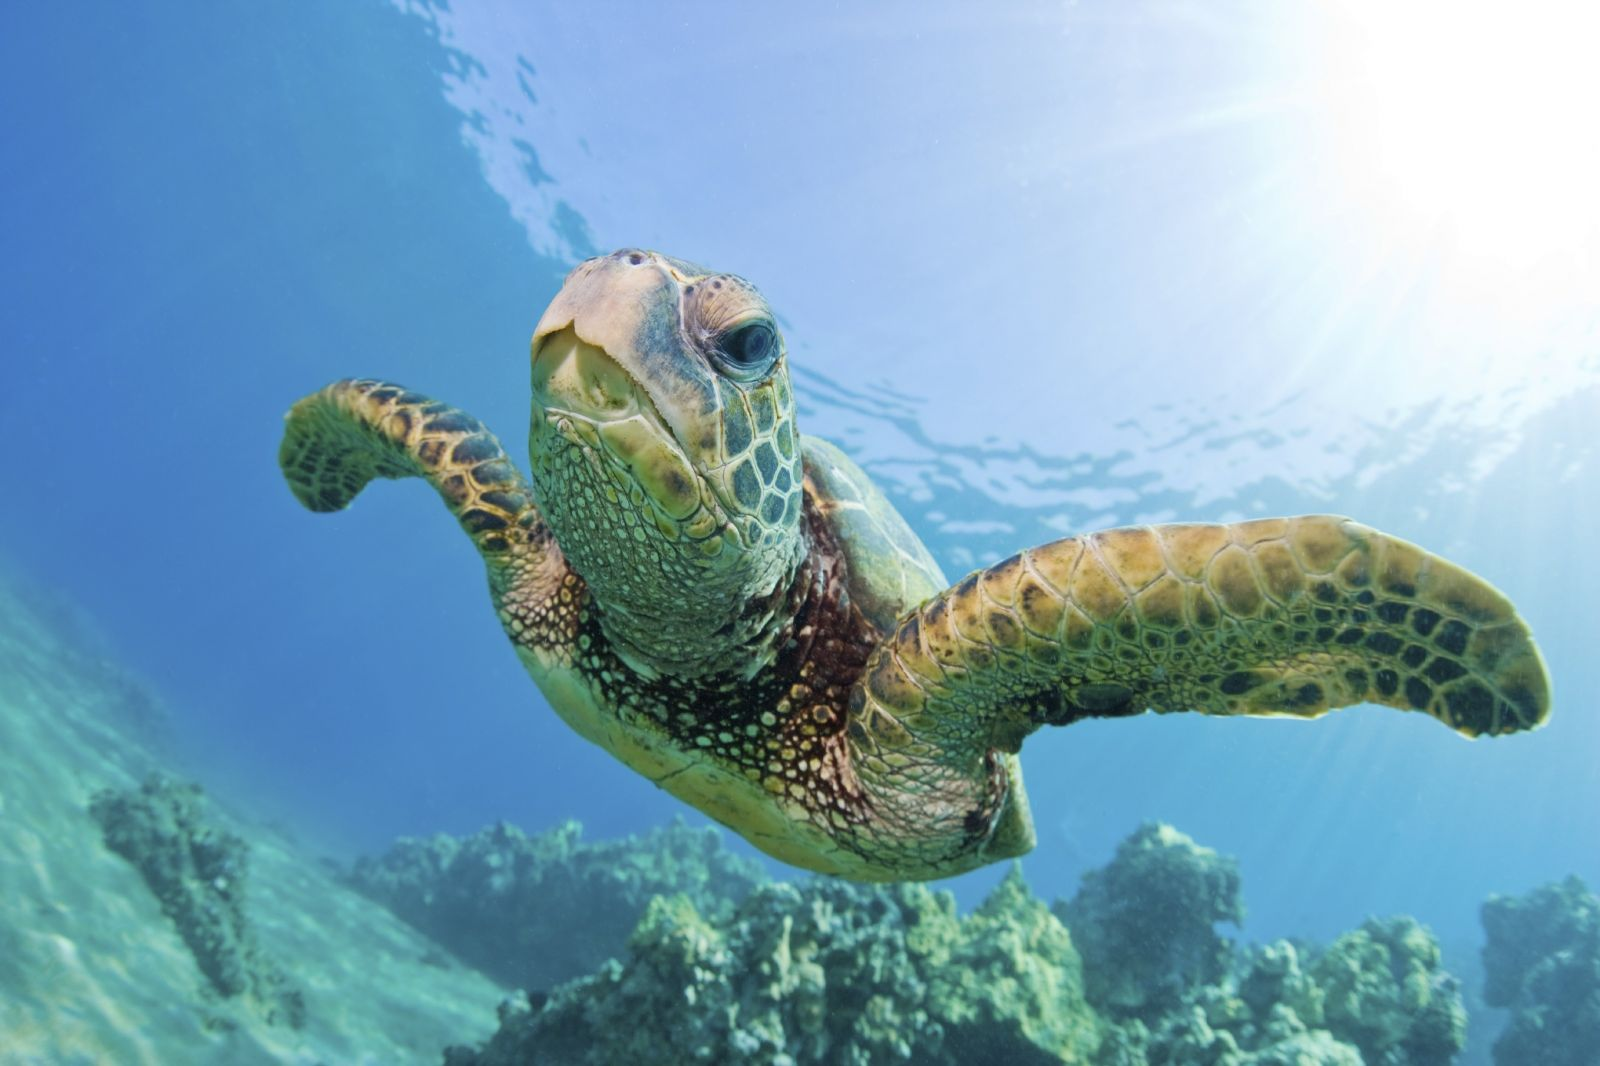 green sea turtles are herbivorous species of sea turtles meaning they